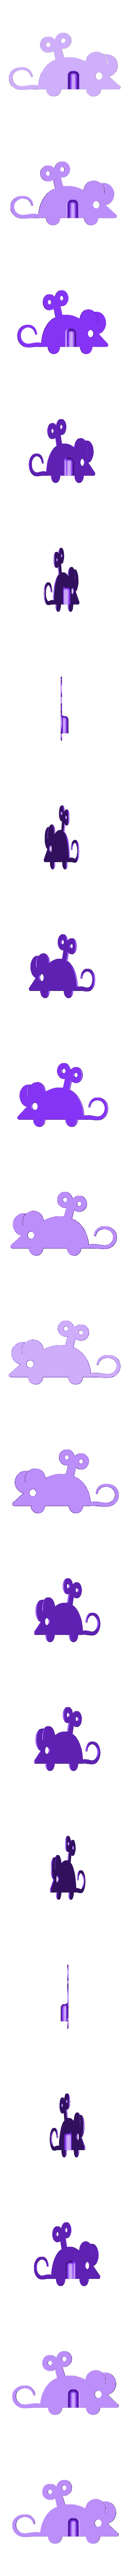 cat_treat_toy-mouse.STL Download STL file CAT TREAT TOY • 3D printer object, tom4z